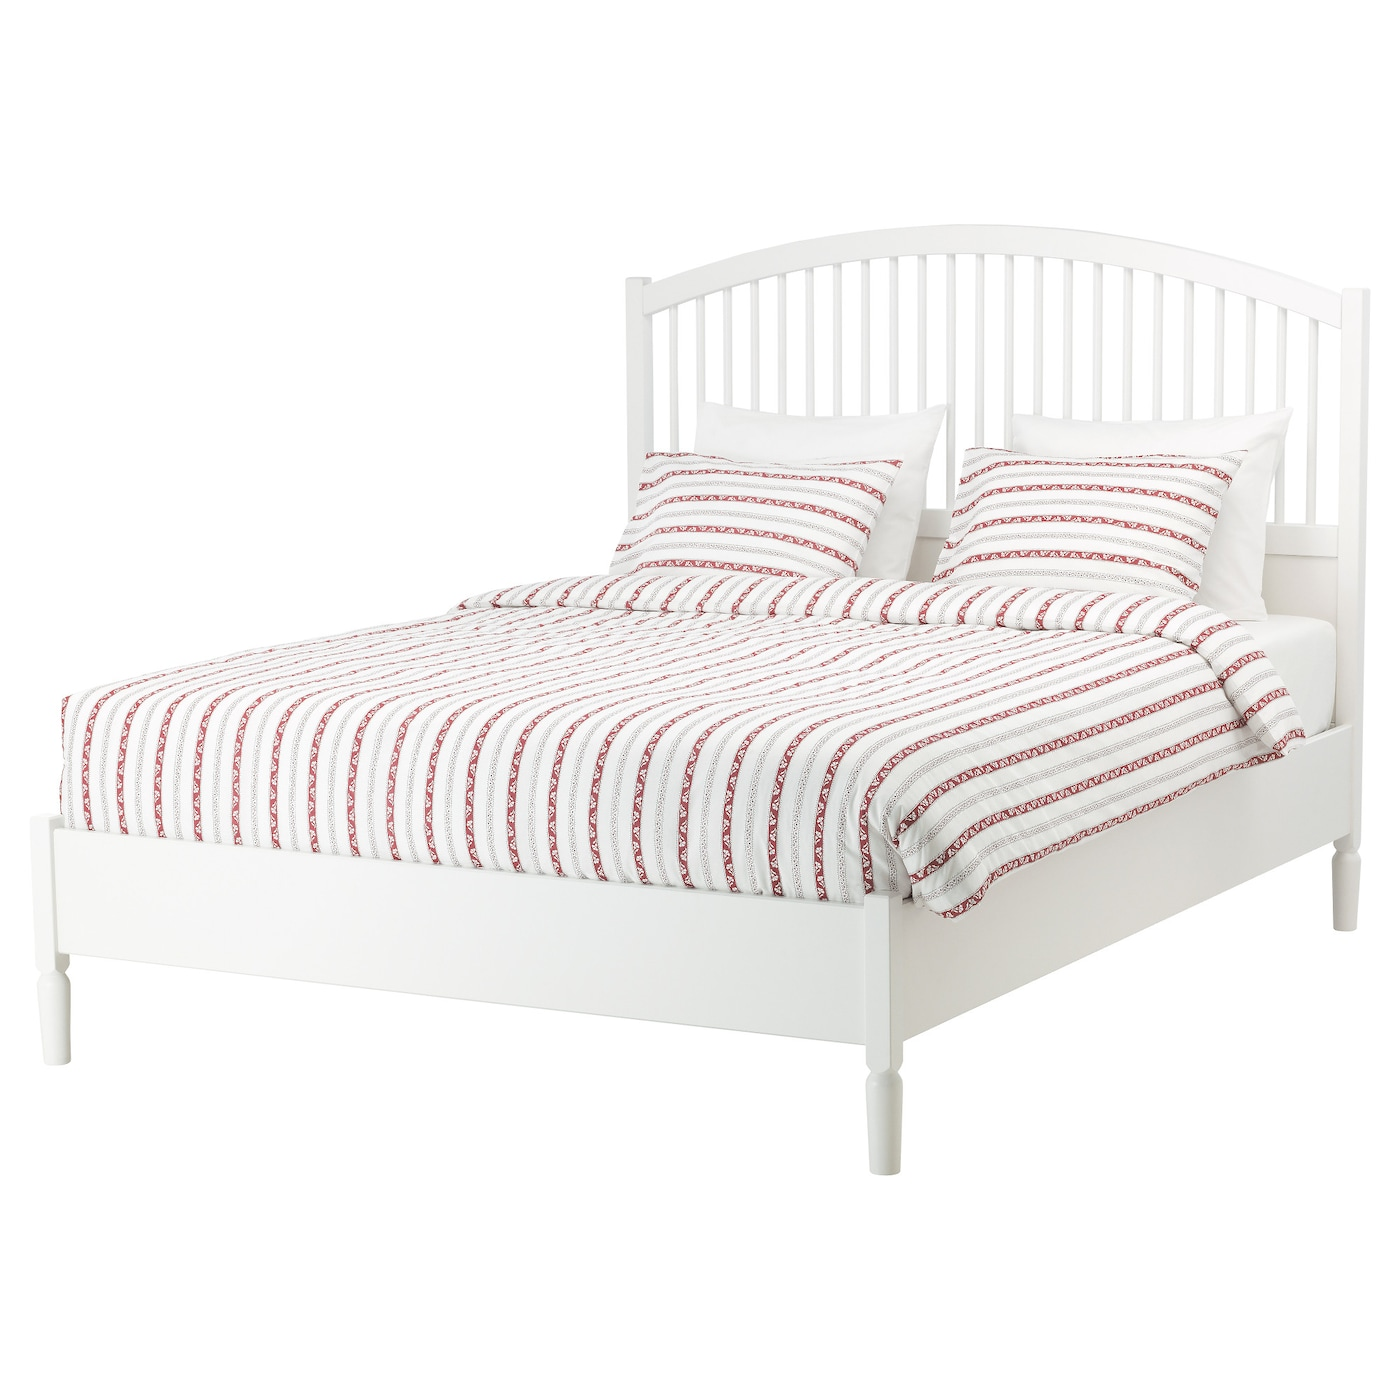 Tyssedal bed frame white leirsund standard king ikea How to buy a bed